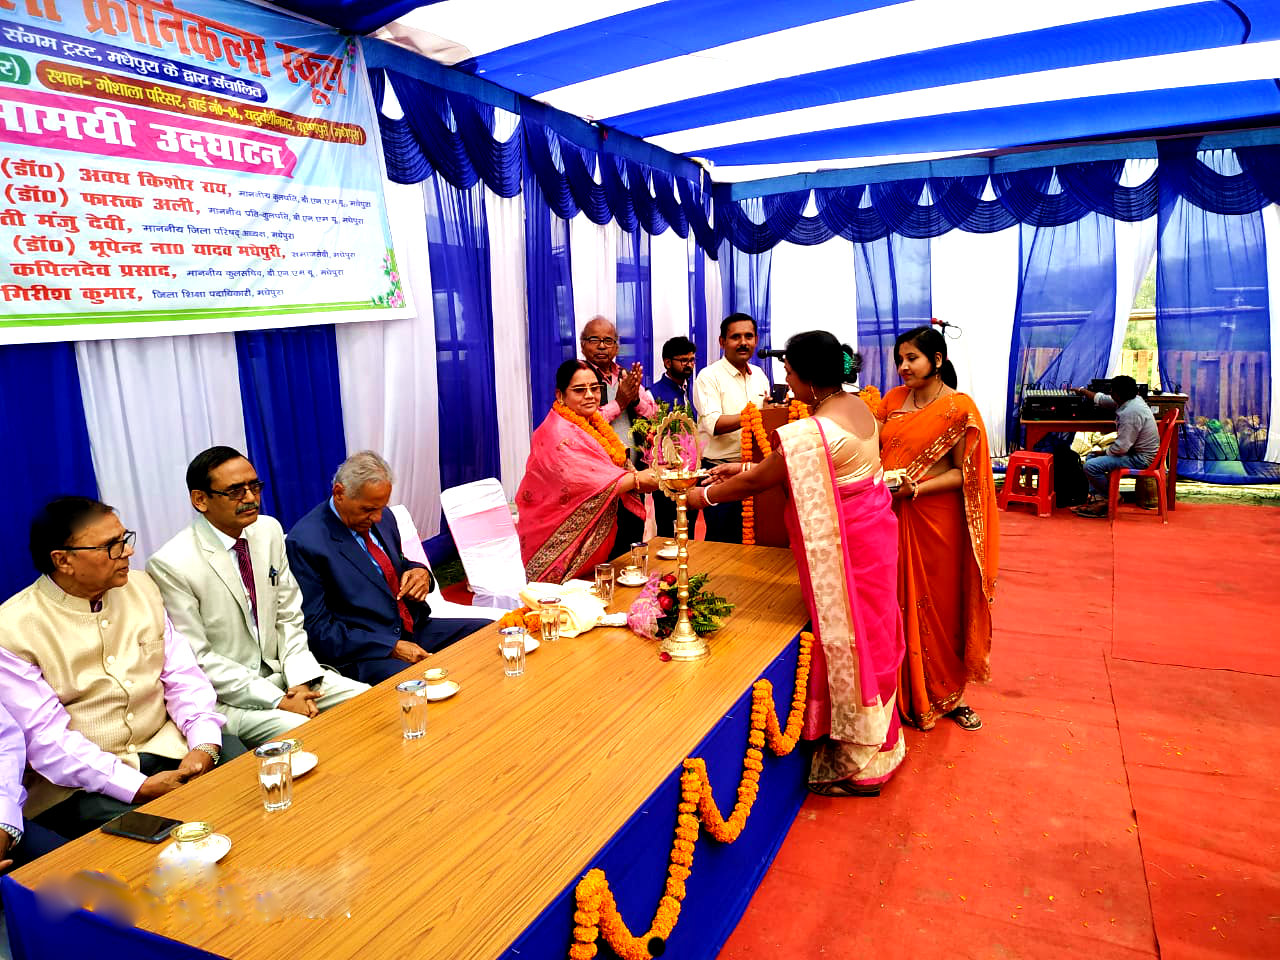 Prof.(Dr.) Madhepuri with Honourable Vice-Chancellor Prof.(Dr.)A.K.Ray, Pro-VC Prof.(Dr.)Farooque Ali & Zila Parishad Adhyaksh Smt.Manju Devi & others attending the Inaugural Function of Gyan Valley Chronicle School under the guidance of Mr.& Mrs. Yaduvanshi.